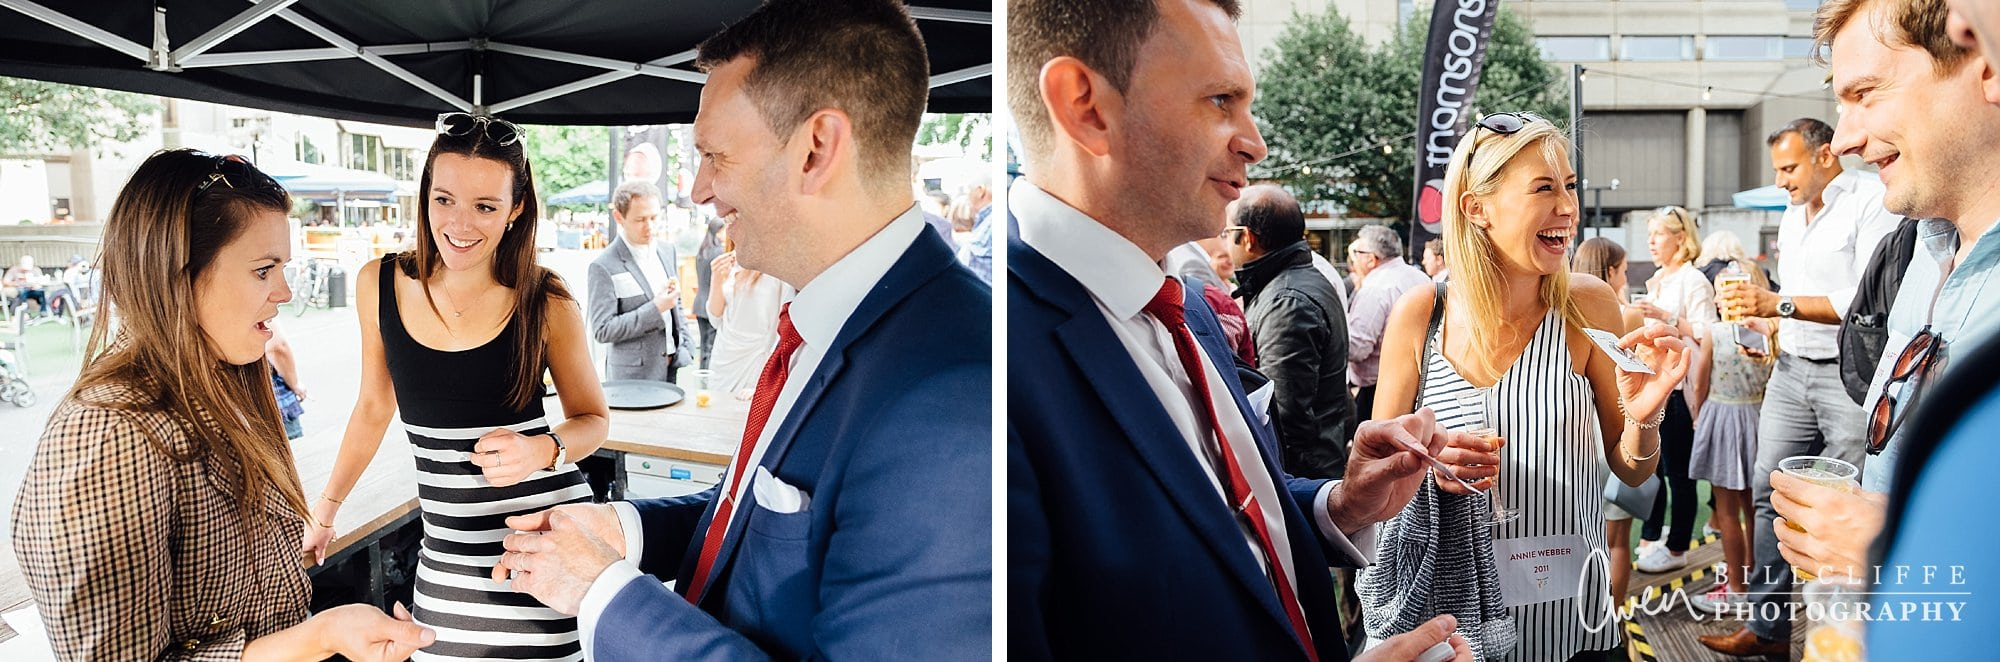 london wedding photographer magician lee smith 002 - Event Entertainer Spotlight: Lee Smith, Walkabout Magician